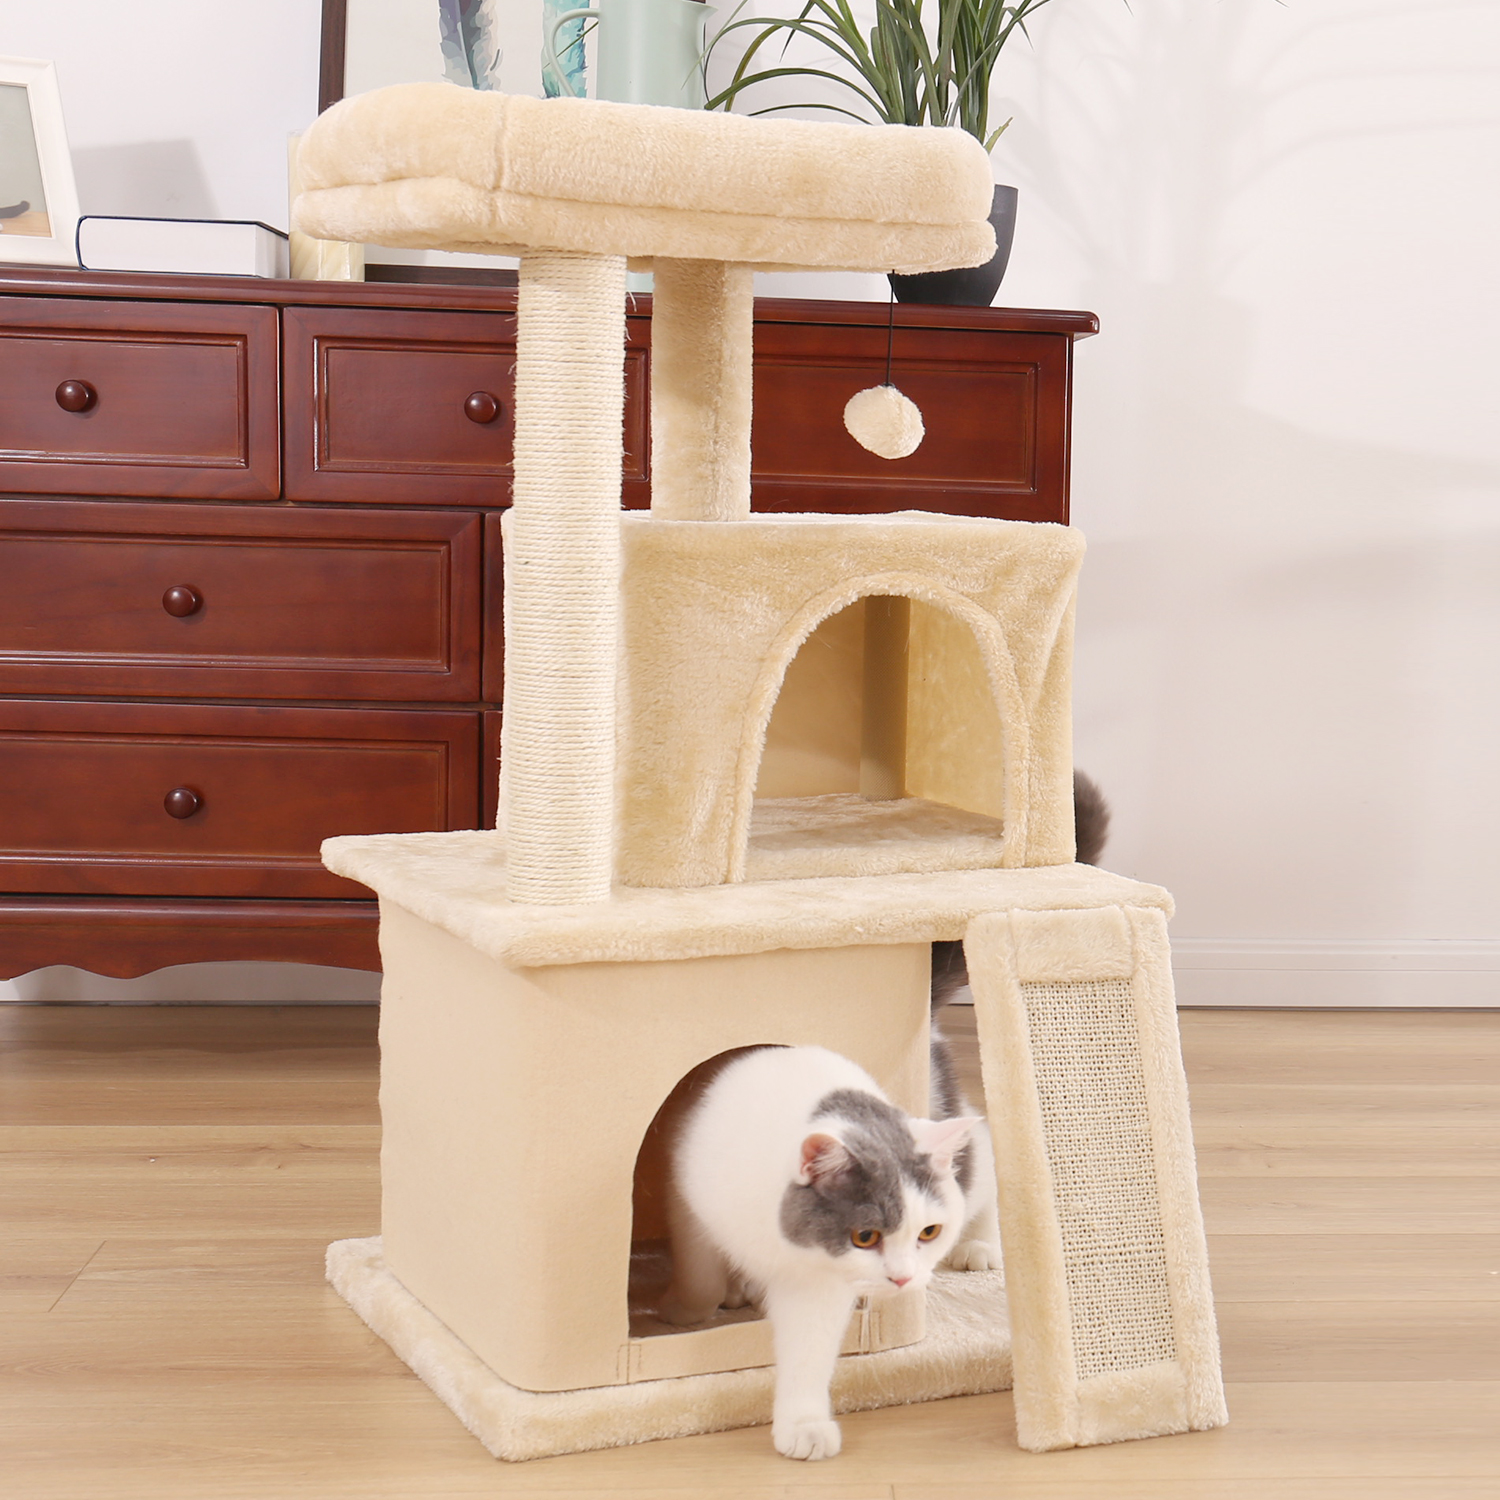 https://ae01.alicdn.com/kf/H5cc064fc64934d48bca81603316041612/Speedy-Pet-Multifunctional-Chair-Creative-Cube-House-with-Scratching-Removable-Pad-Cushions-Pet-Activity-Cat-Tree.jpg